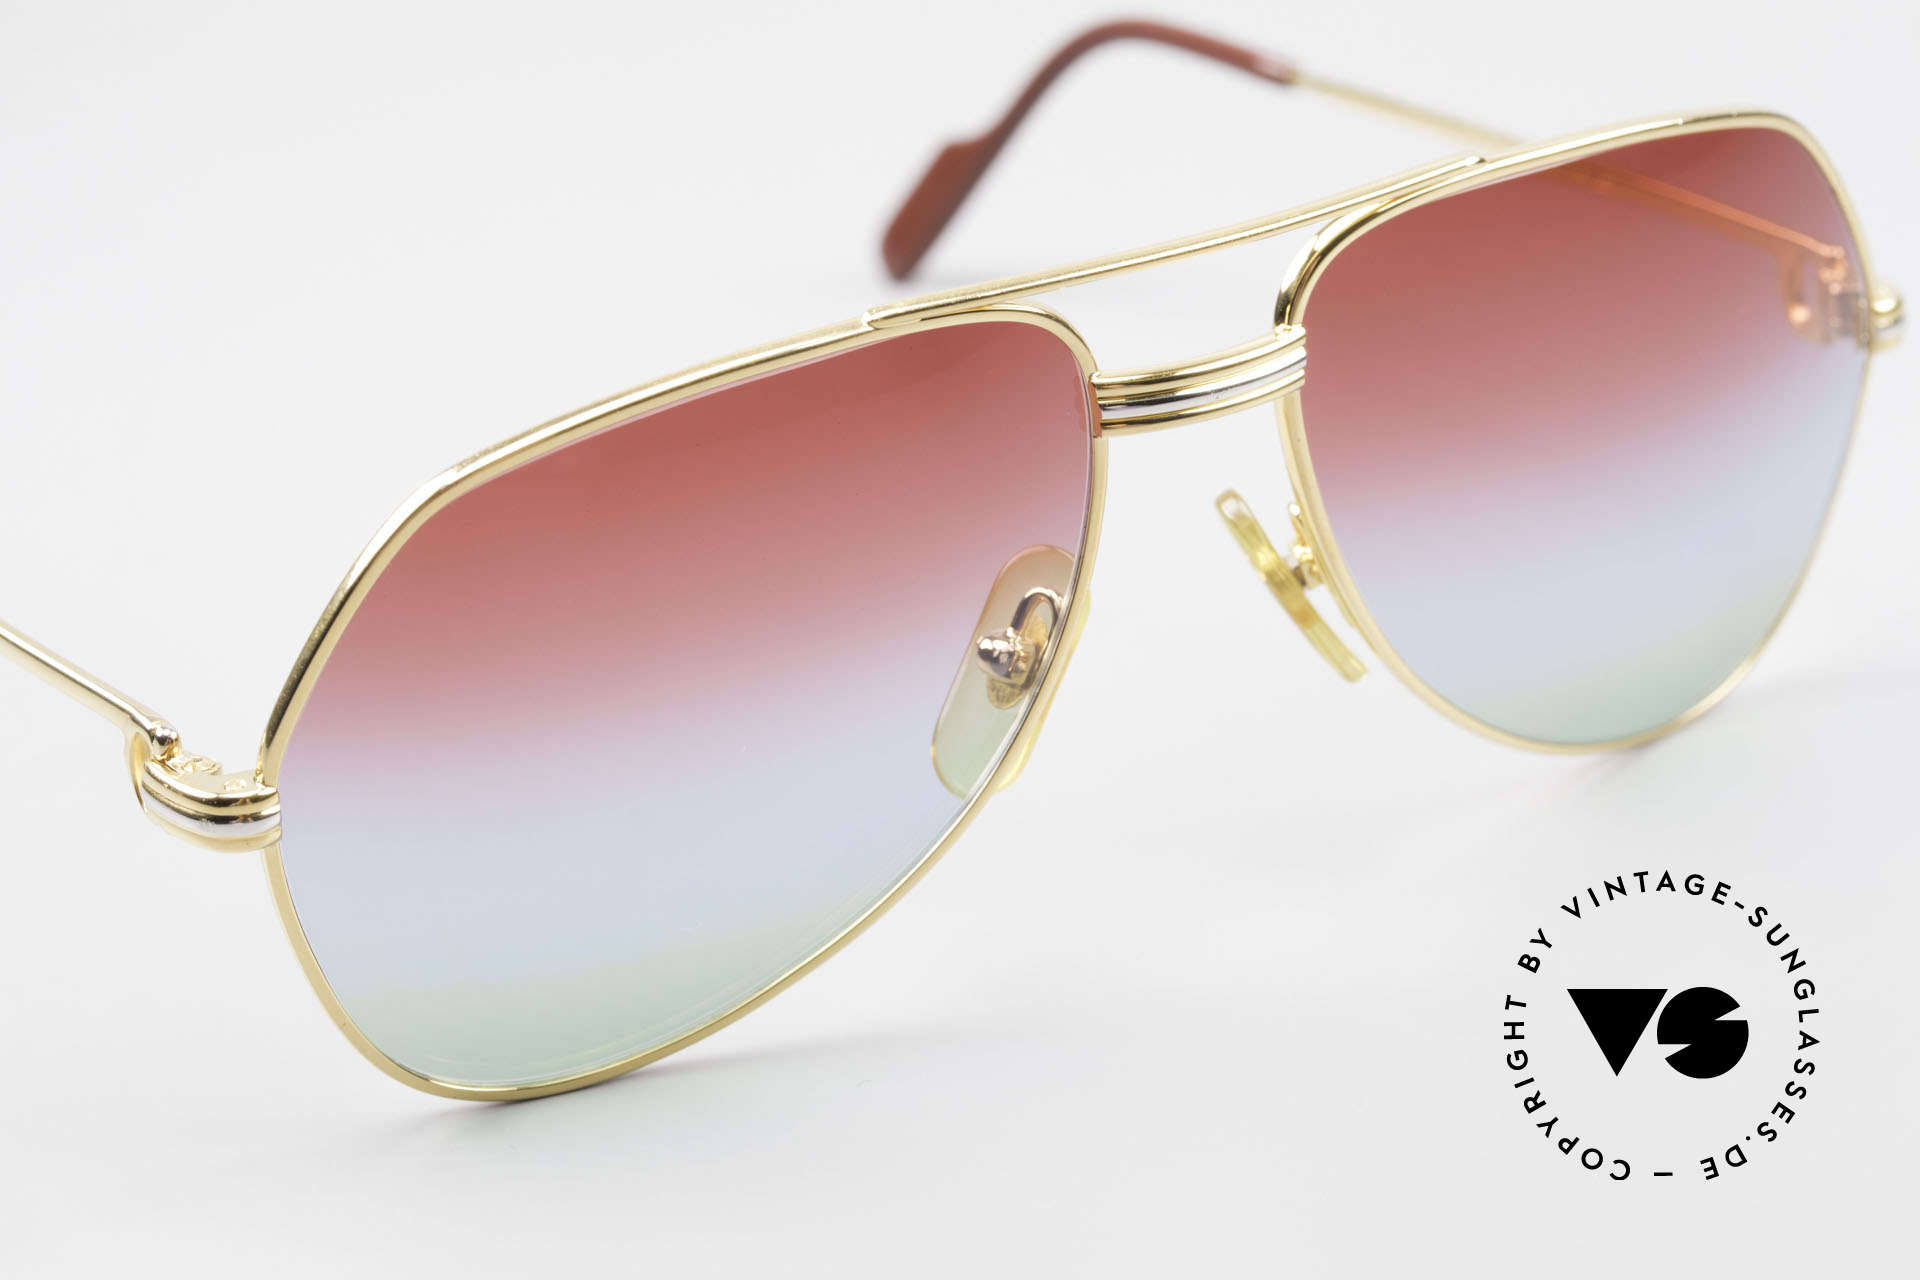 Cartier Vendome LC - S 1980's Sunglasses Tricolored, 2nd hand model, but in mint condition with Cartier box, Made for Men and Women